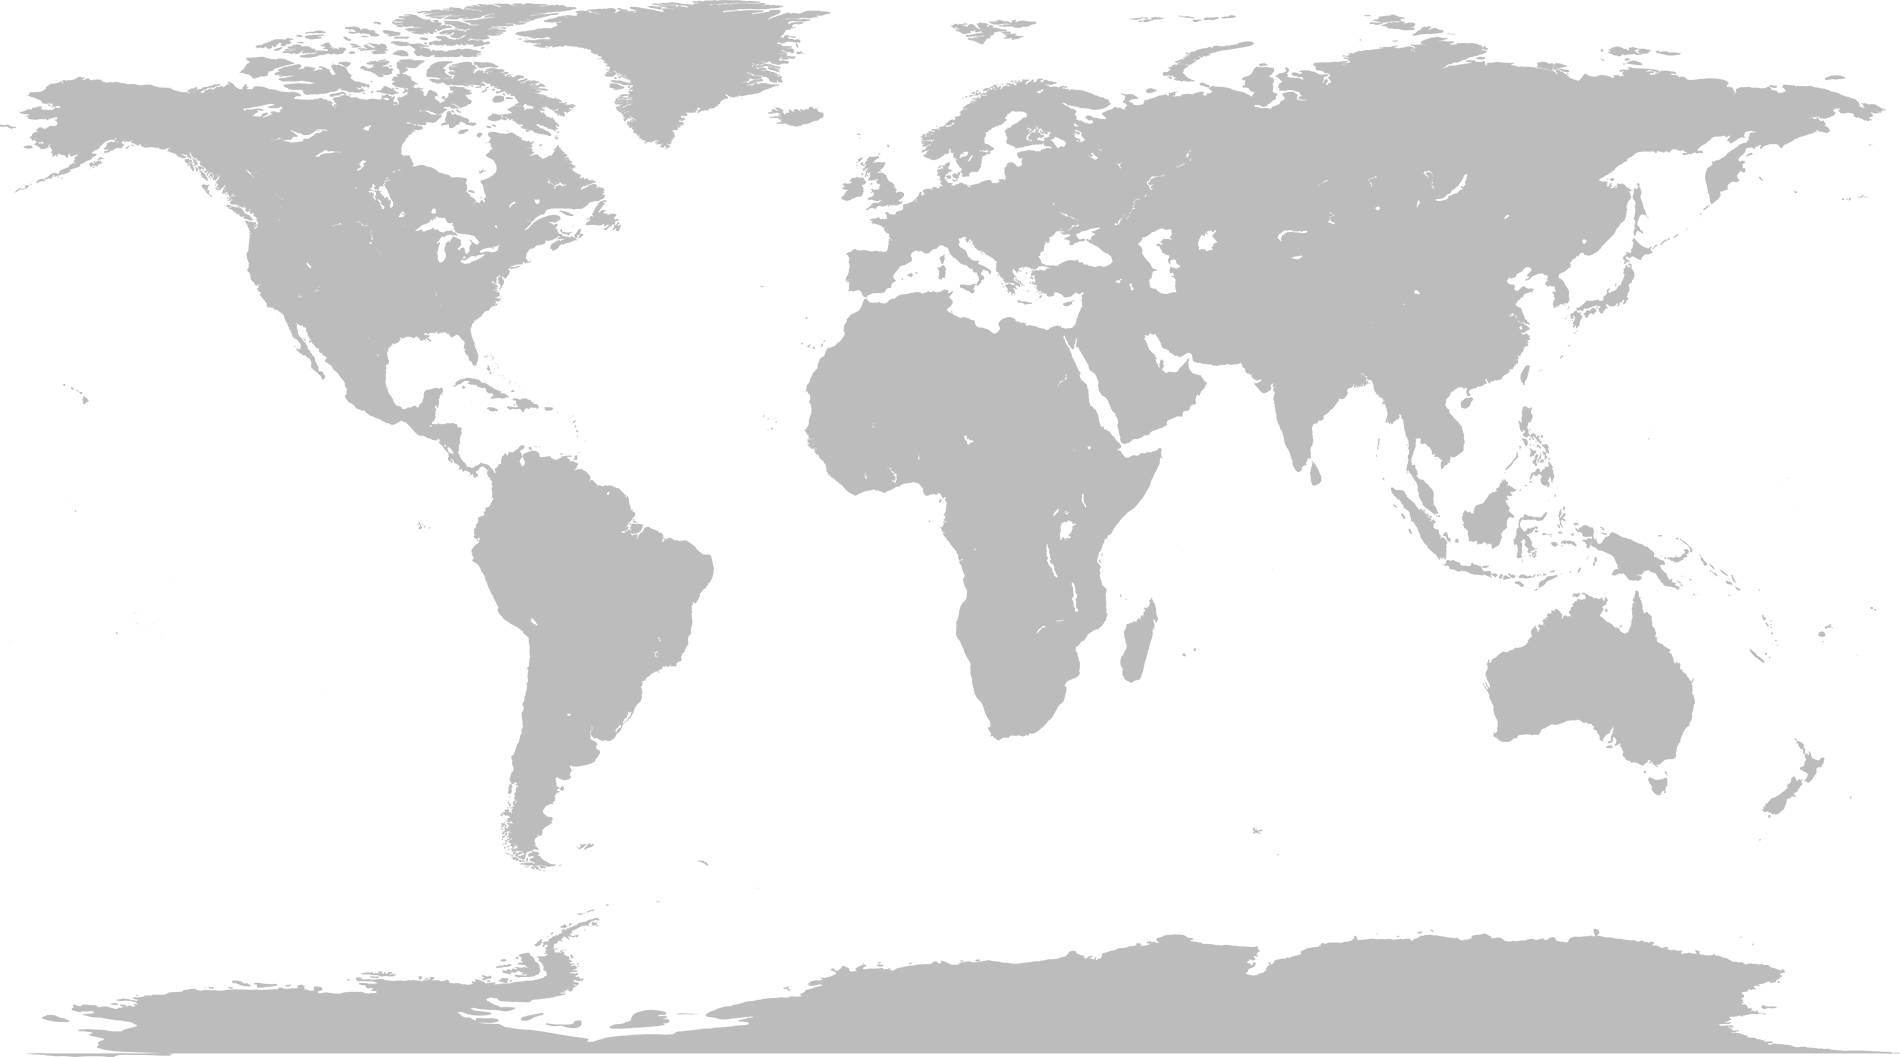 World_map_blank_without_borders copy